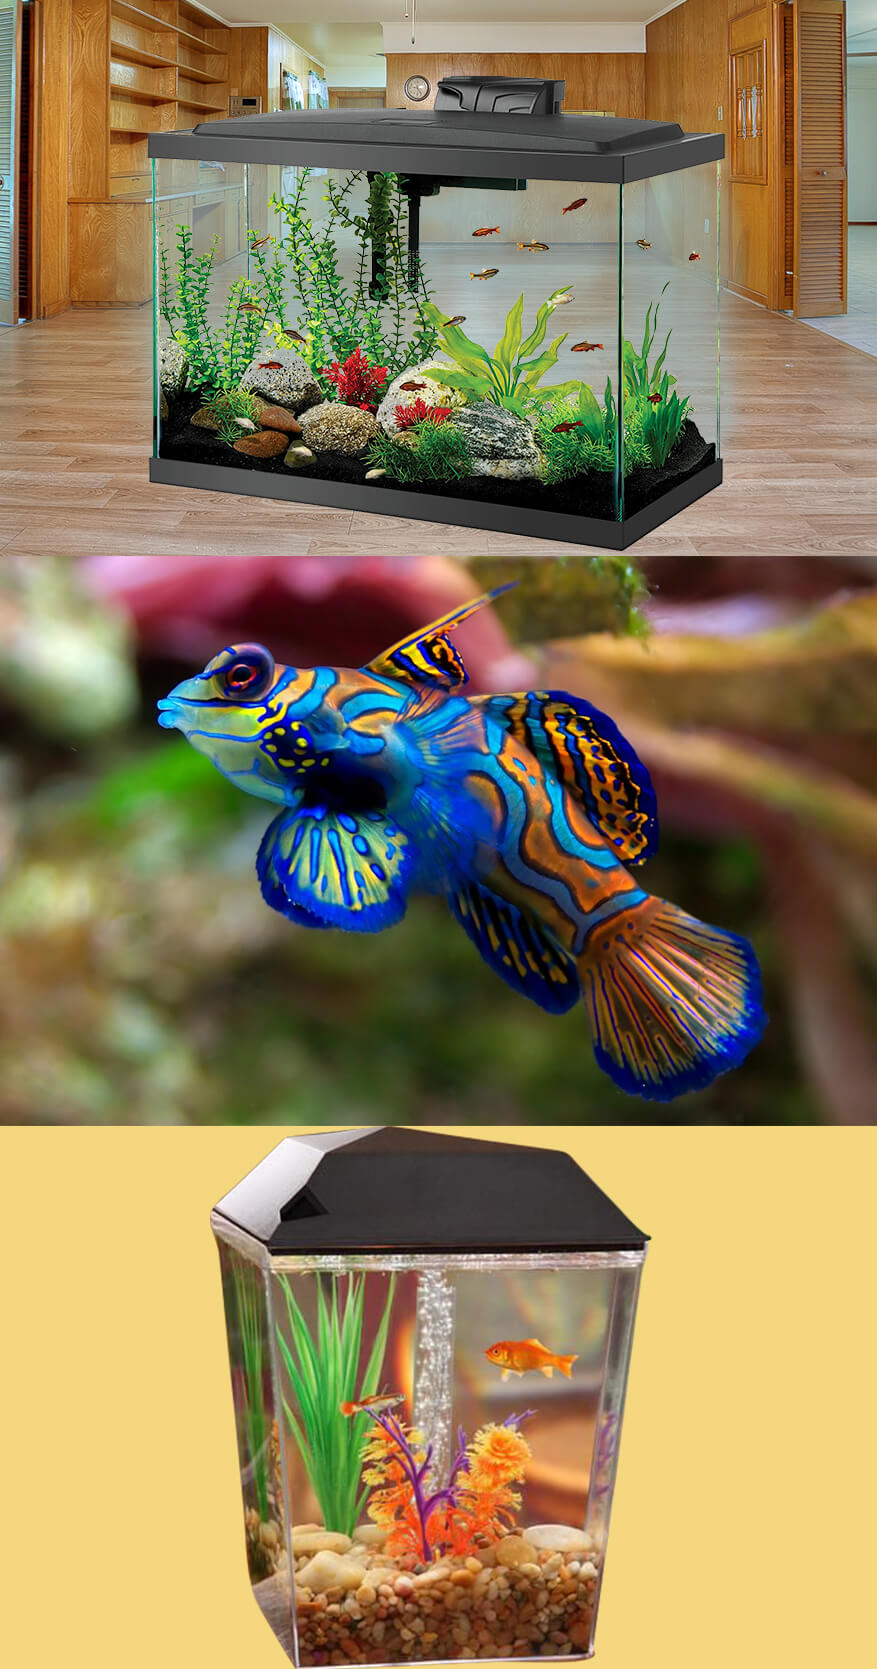 How to Keep Fish Tank Cool in summer?